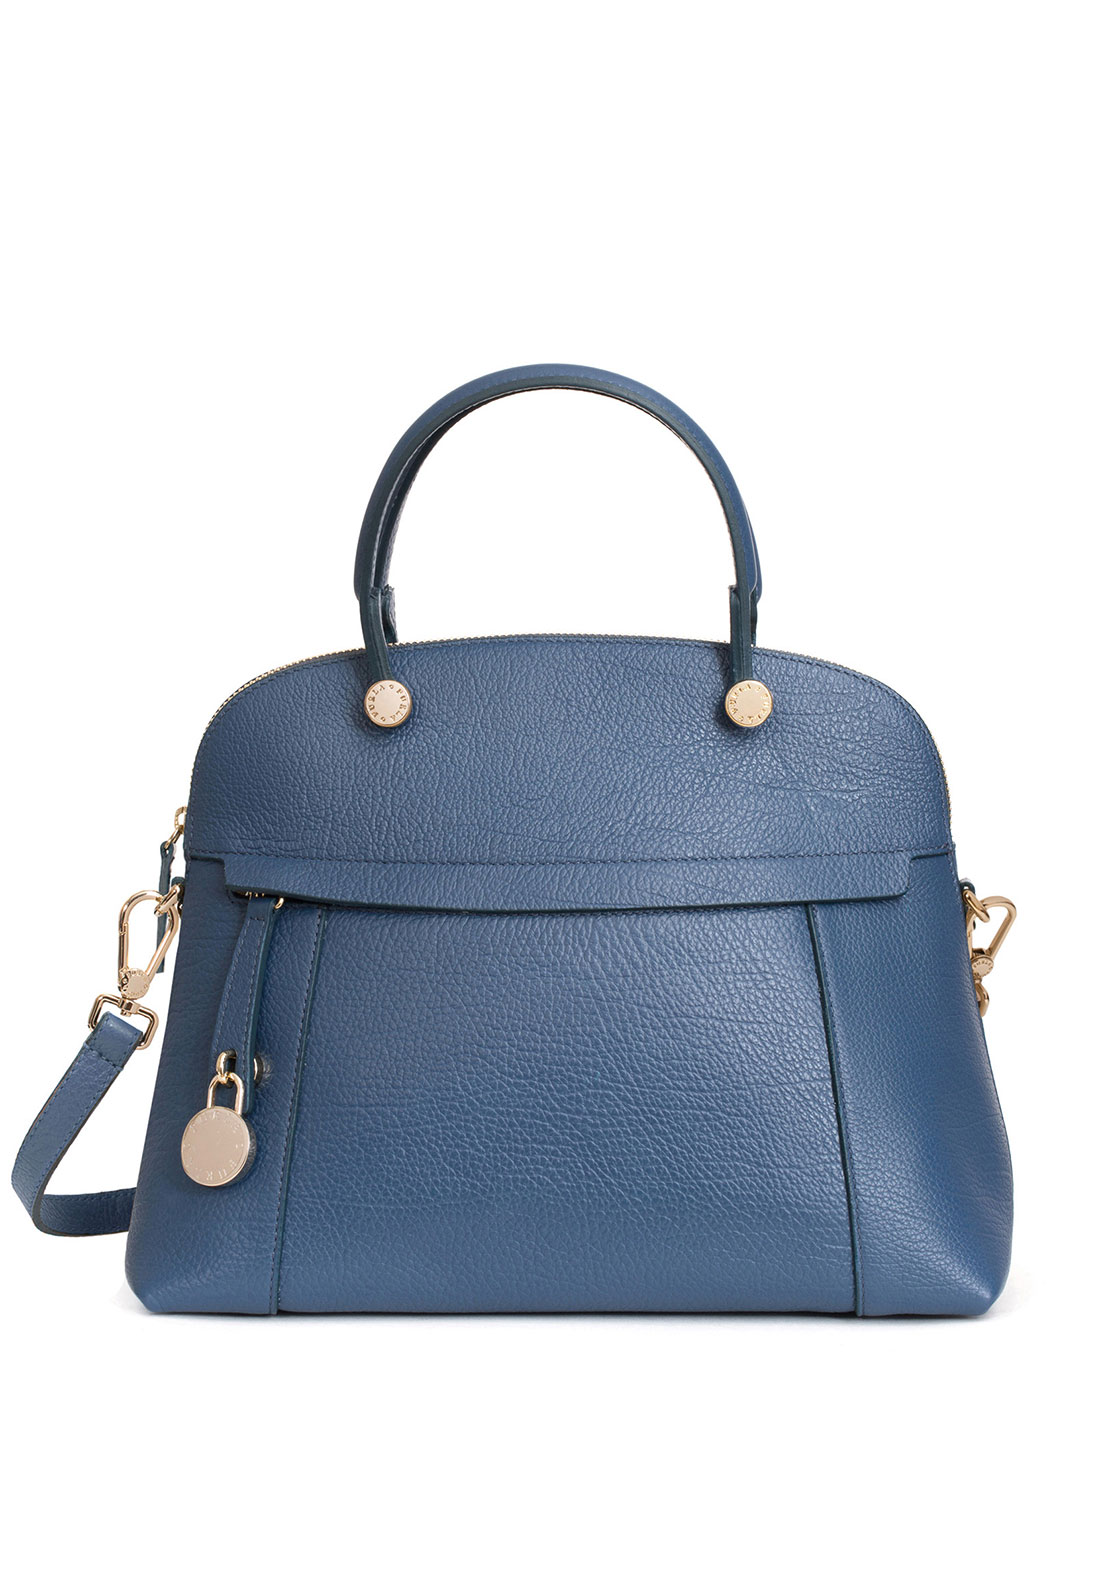 Furla Piper Top Handle Medium, Blue